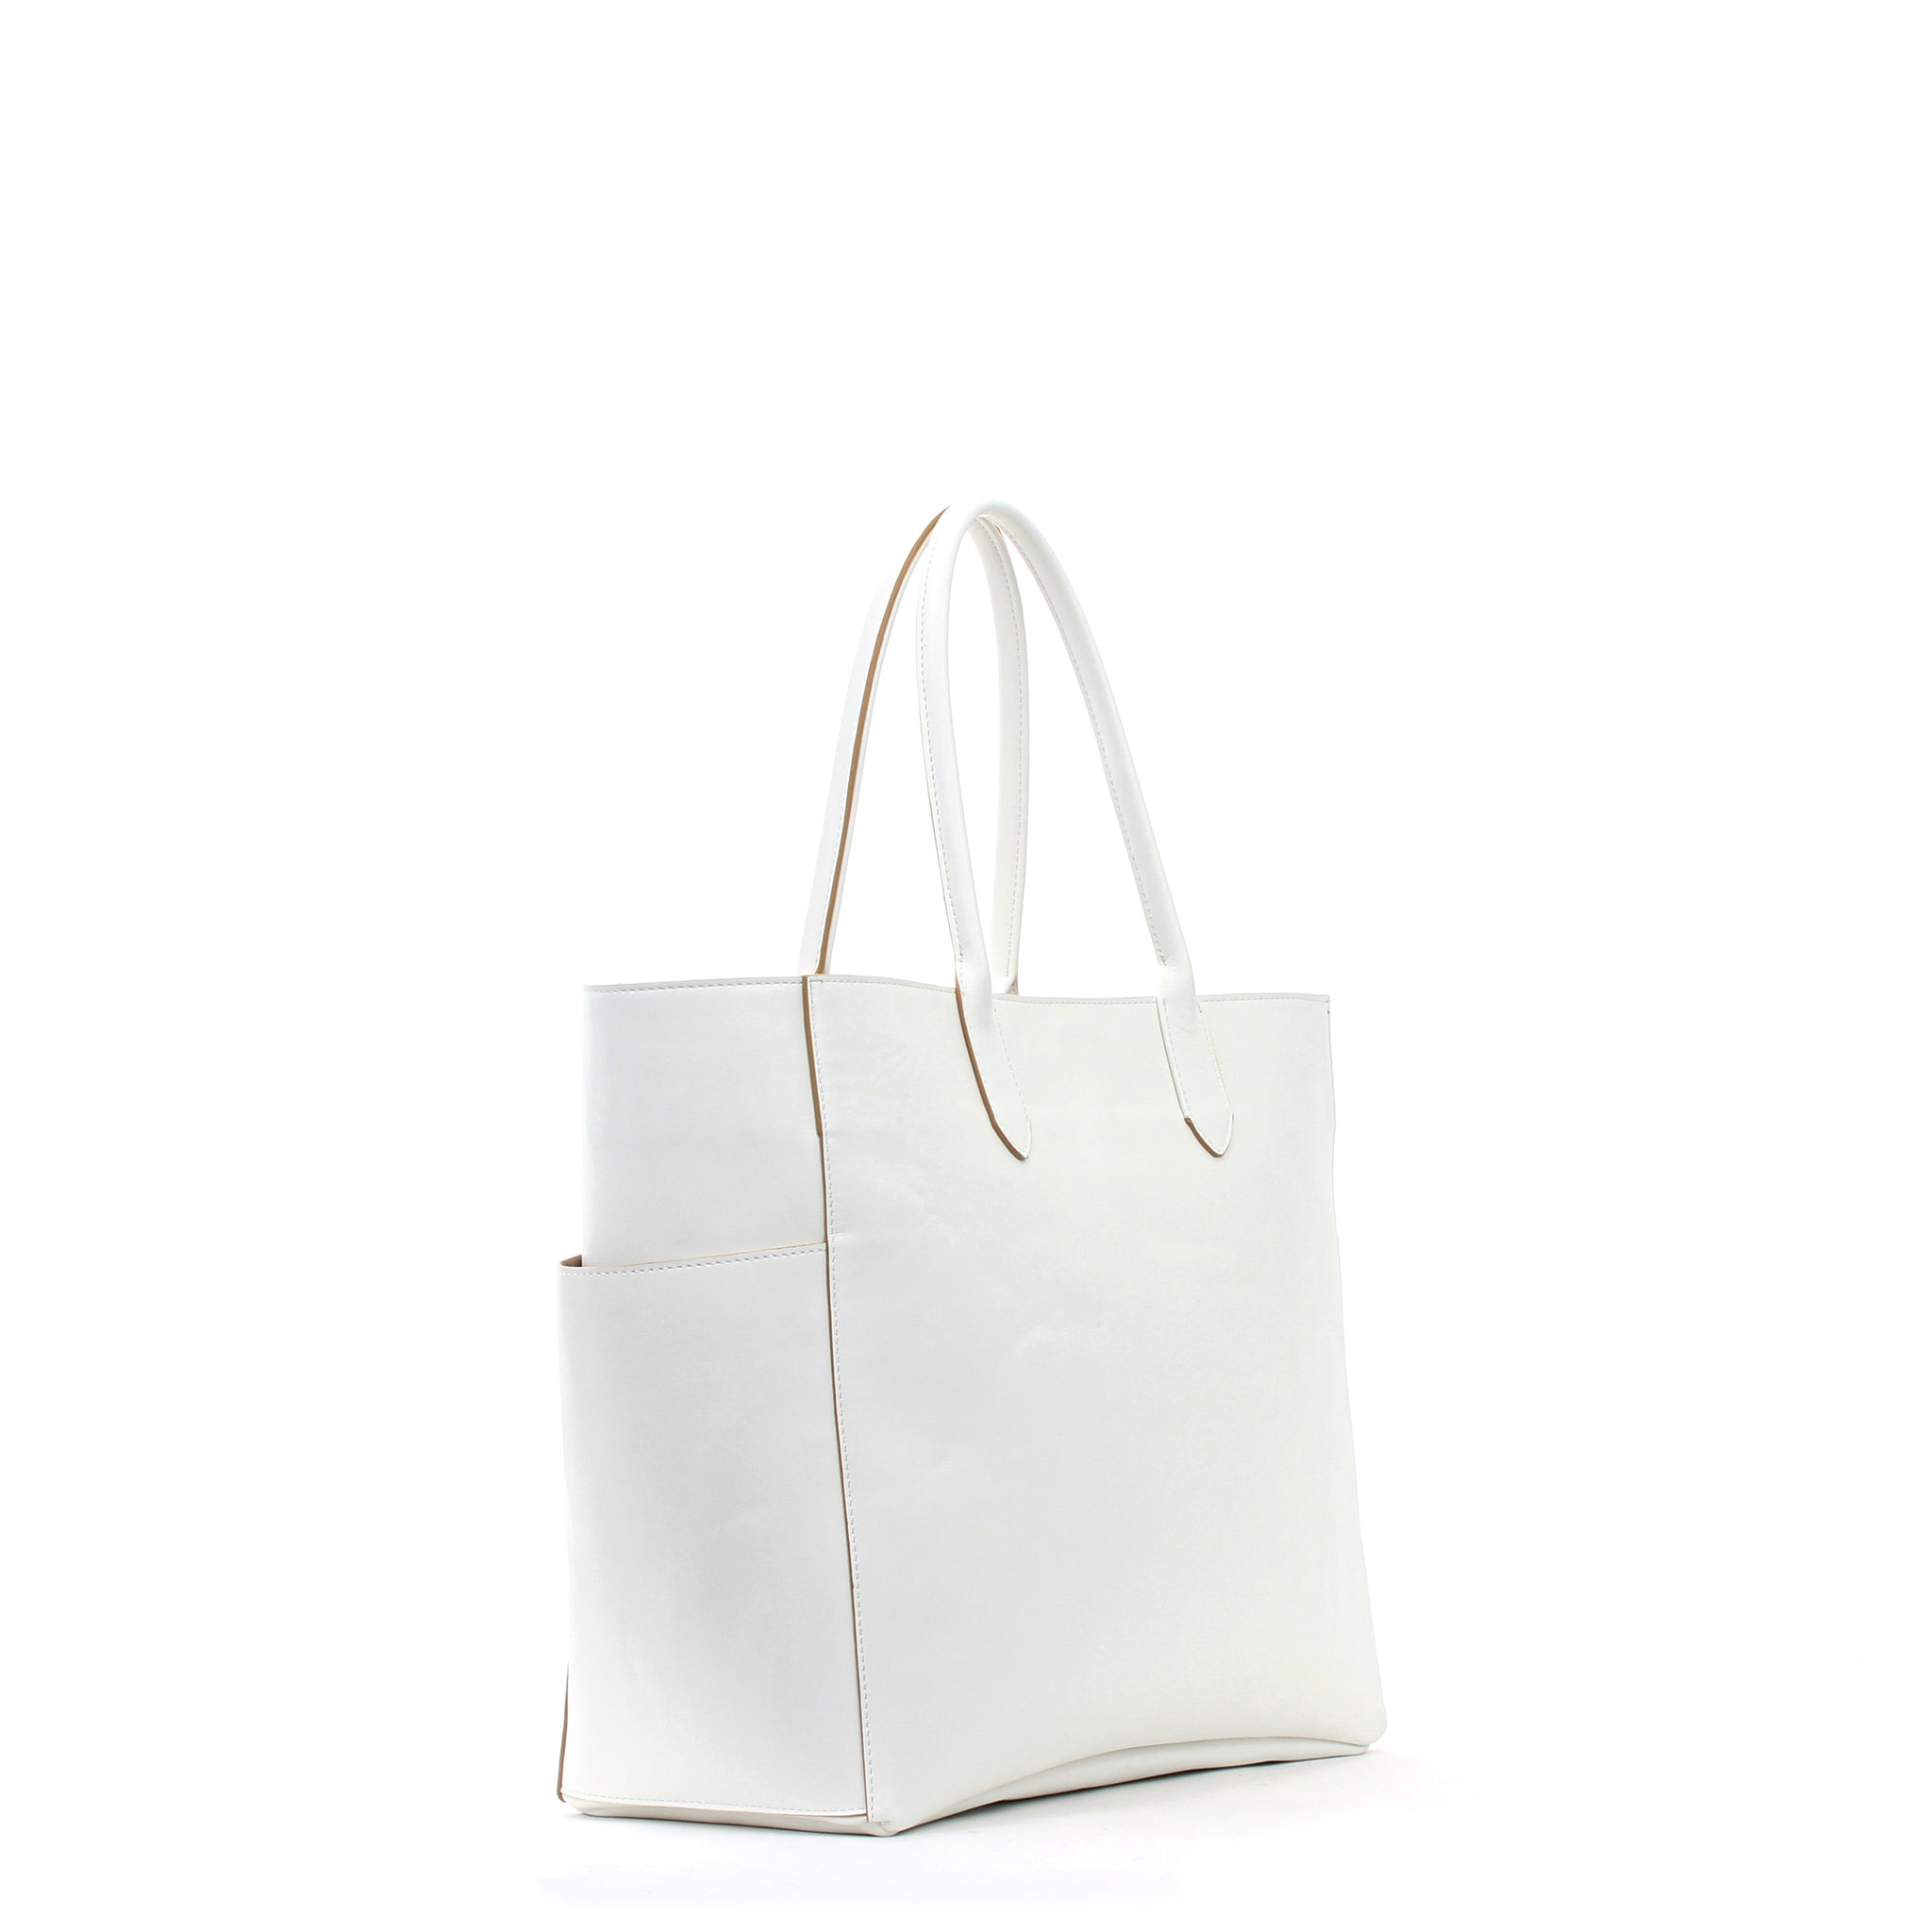 XL POCKET TOTE LINEN CALF